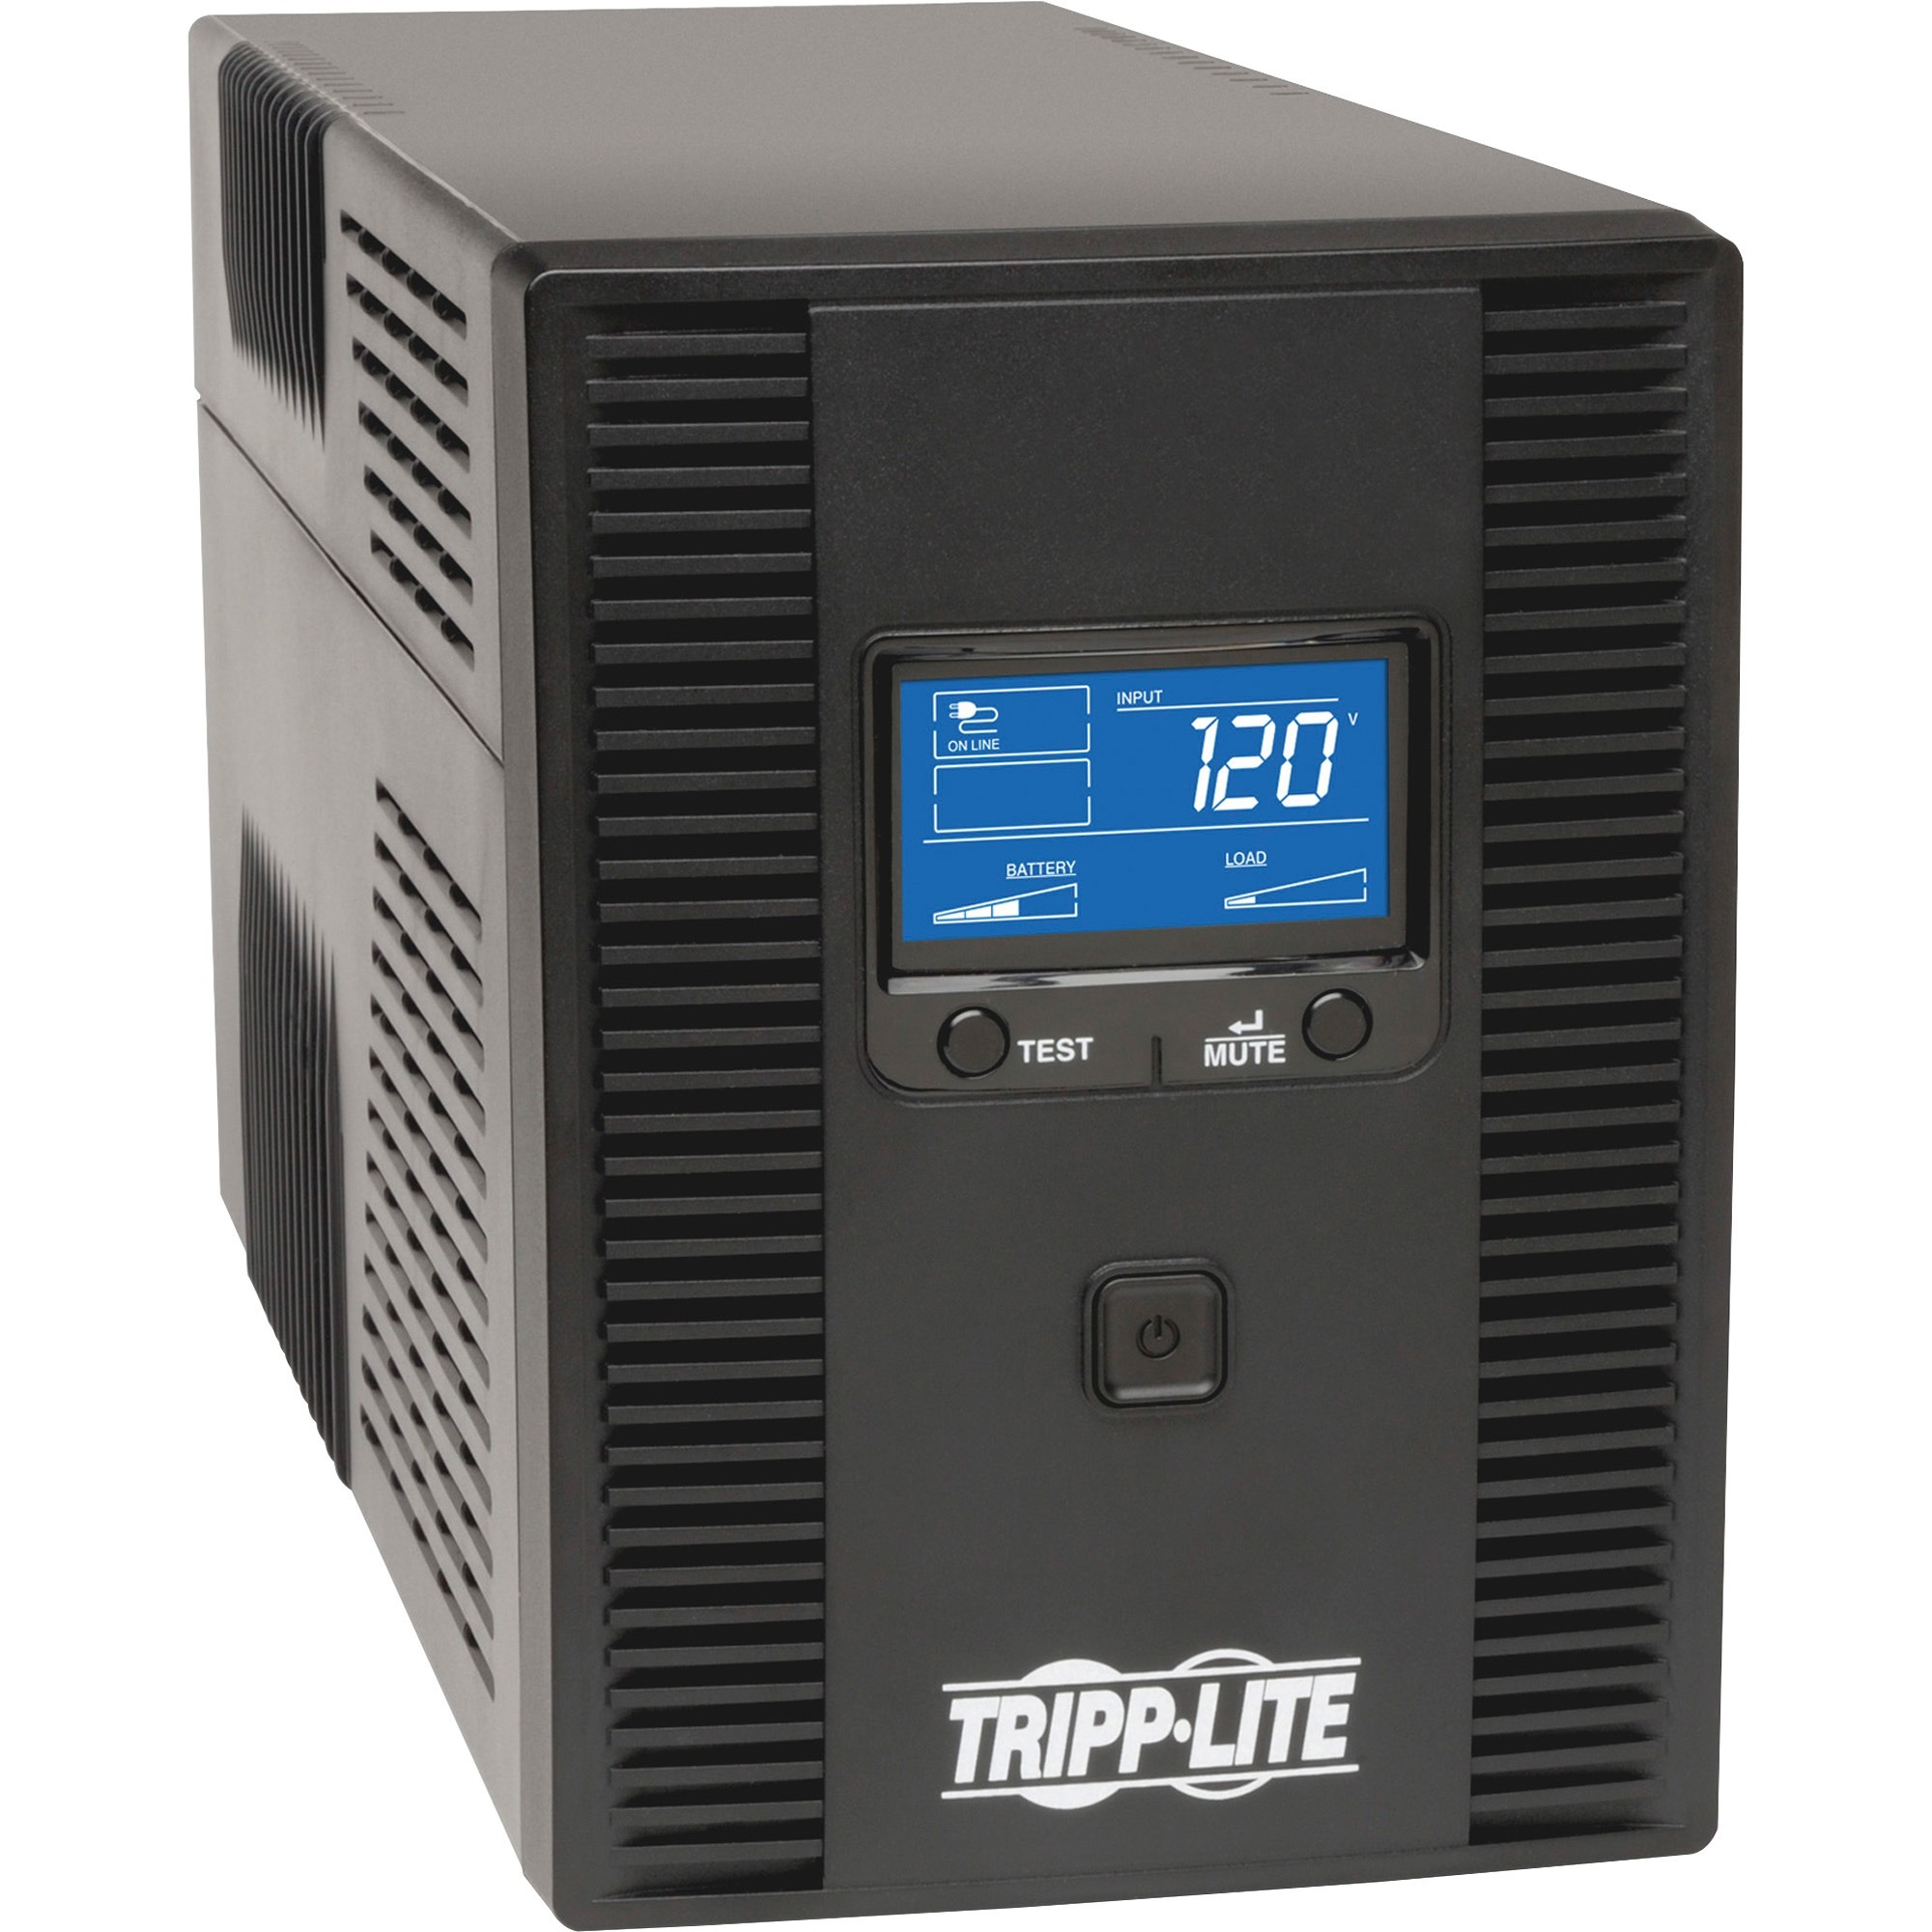 Tripp Lite, TRPSMT1500LCDT, Digital LCD UPS Systems, 1 Each, Black